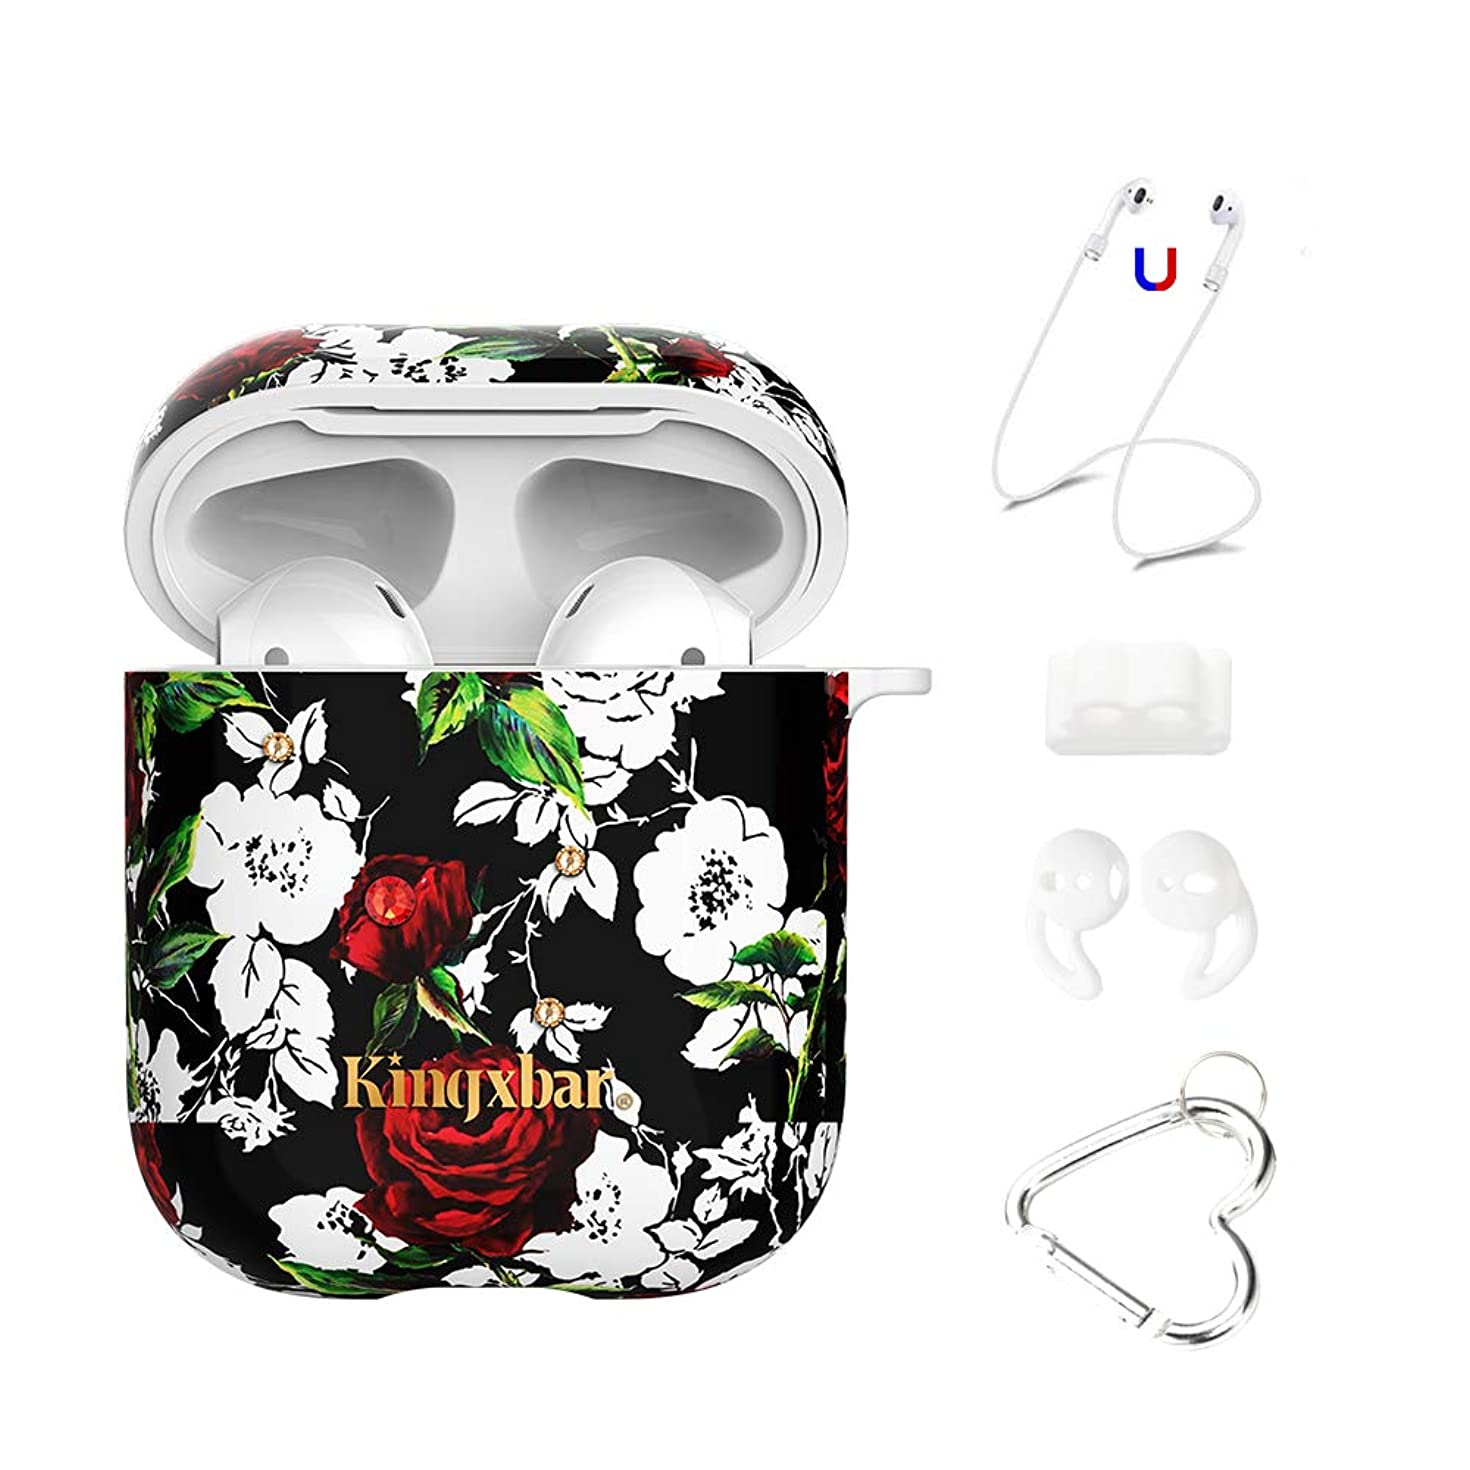 AirPods Case, Crystal from Swarovski Shiny Case, 5 in 1 AirPods Accessories Kit for Apple AirPods 2 & 1 Charging Case Protective Cover Gothic Rose Design Hard Skin Case for Girls Women by KINGXBAR